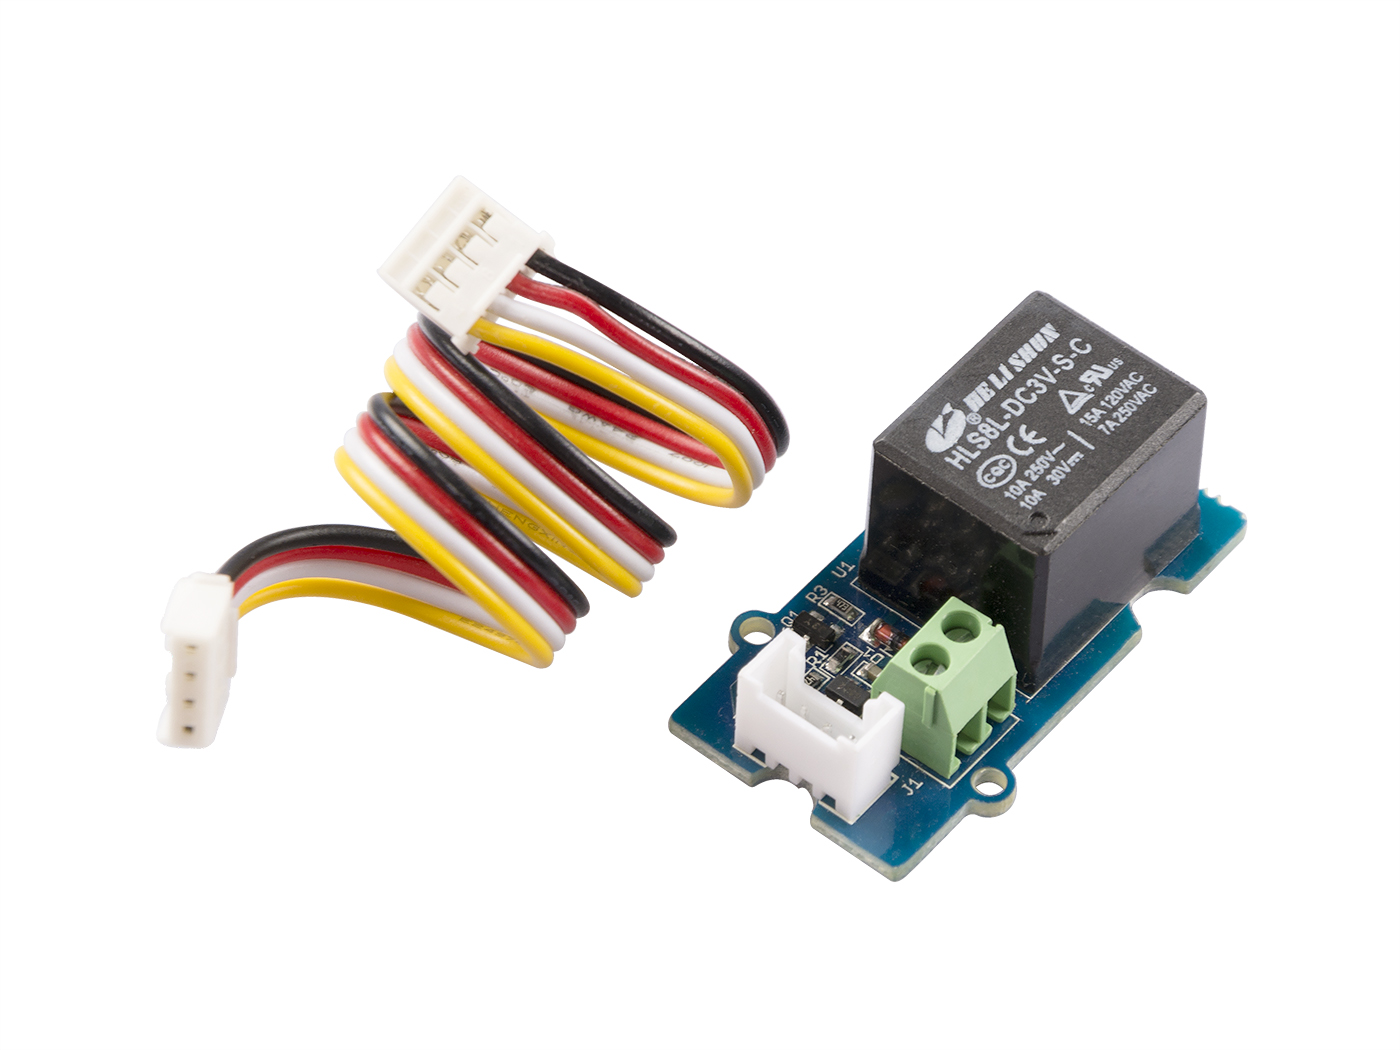 Grove Relay Actuator Seeed Studio Wiring Up A 24v